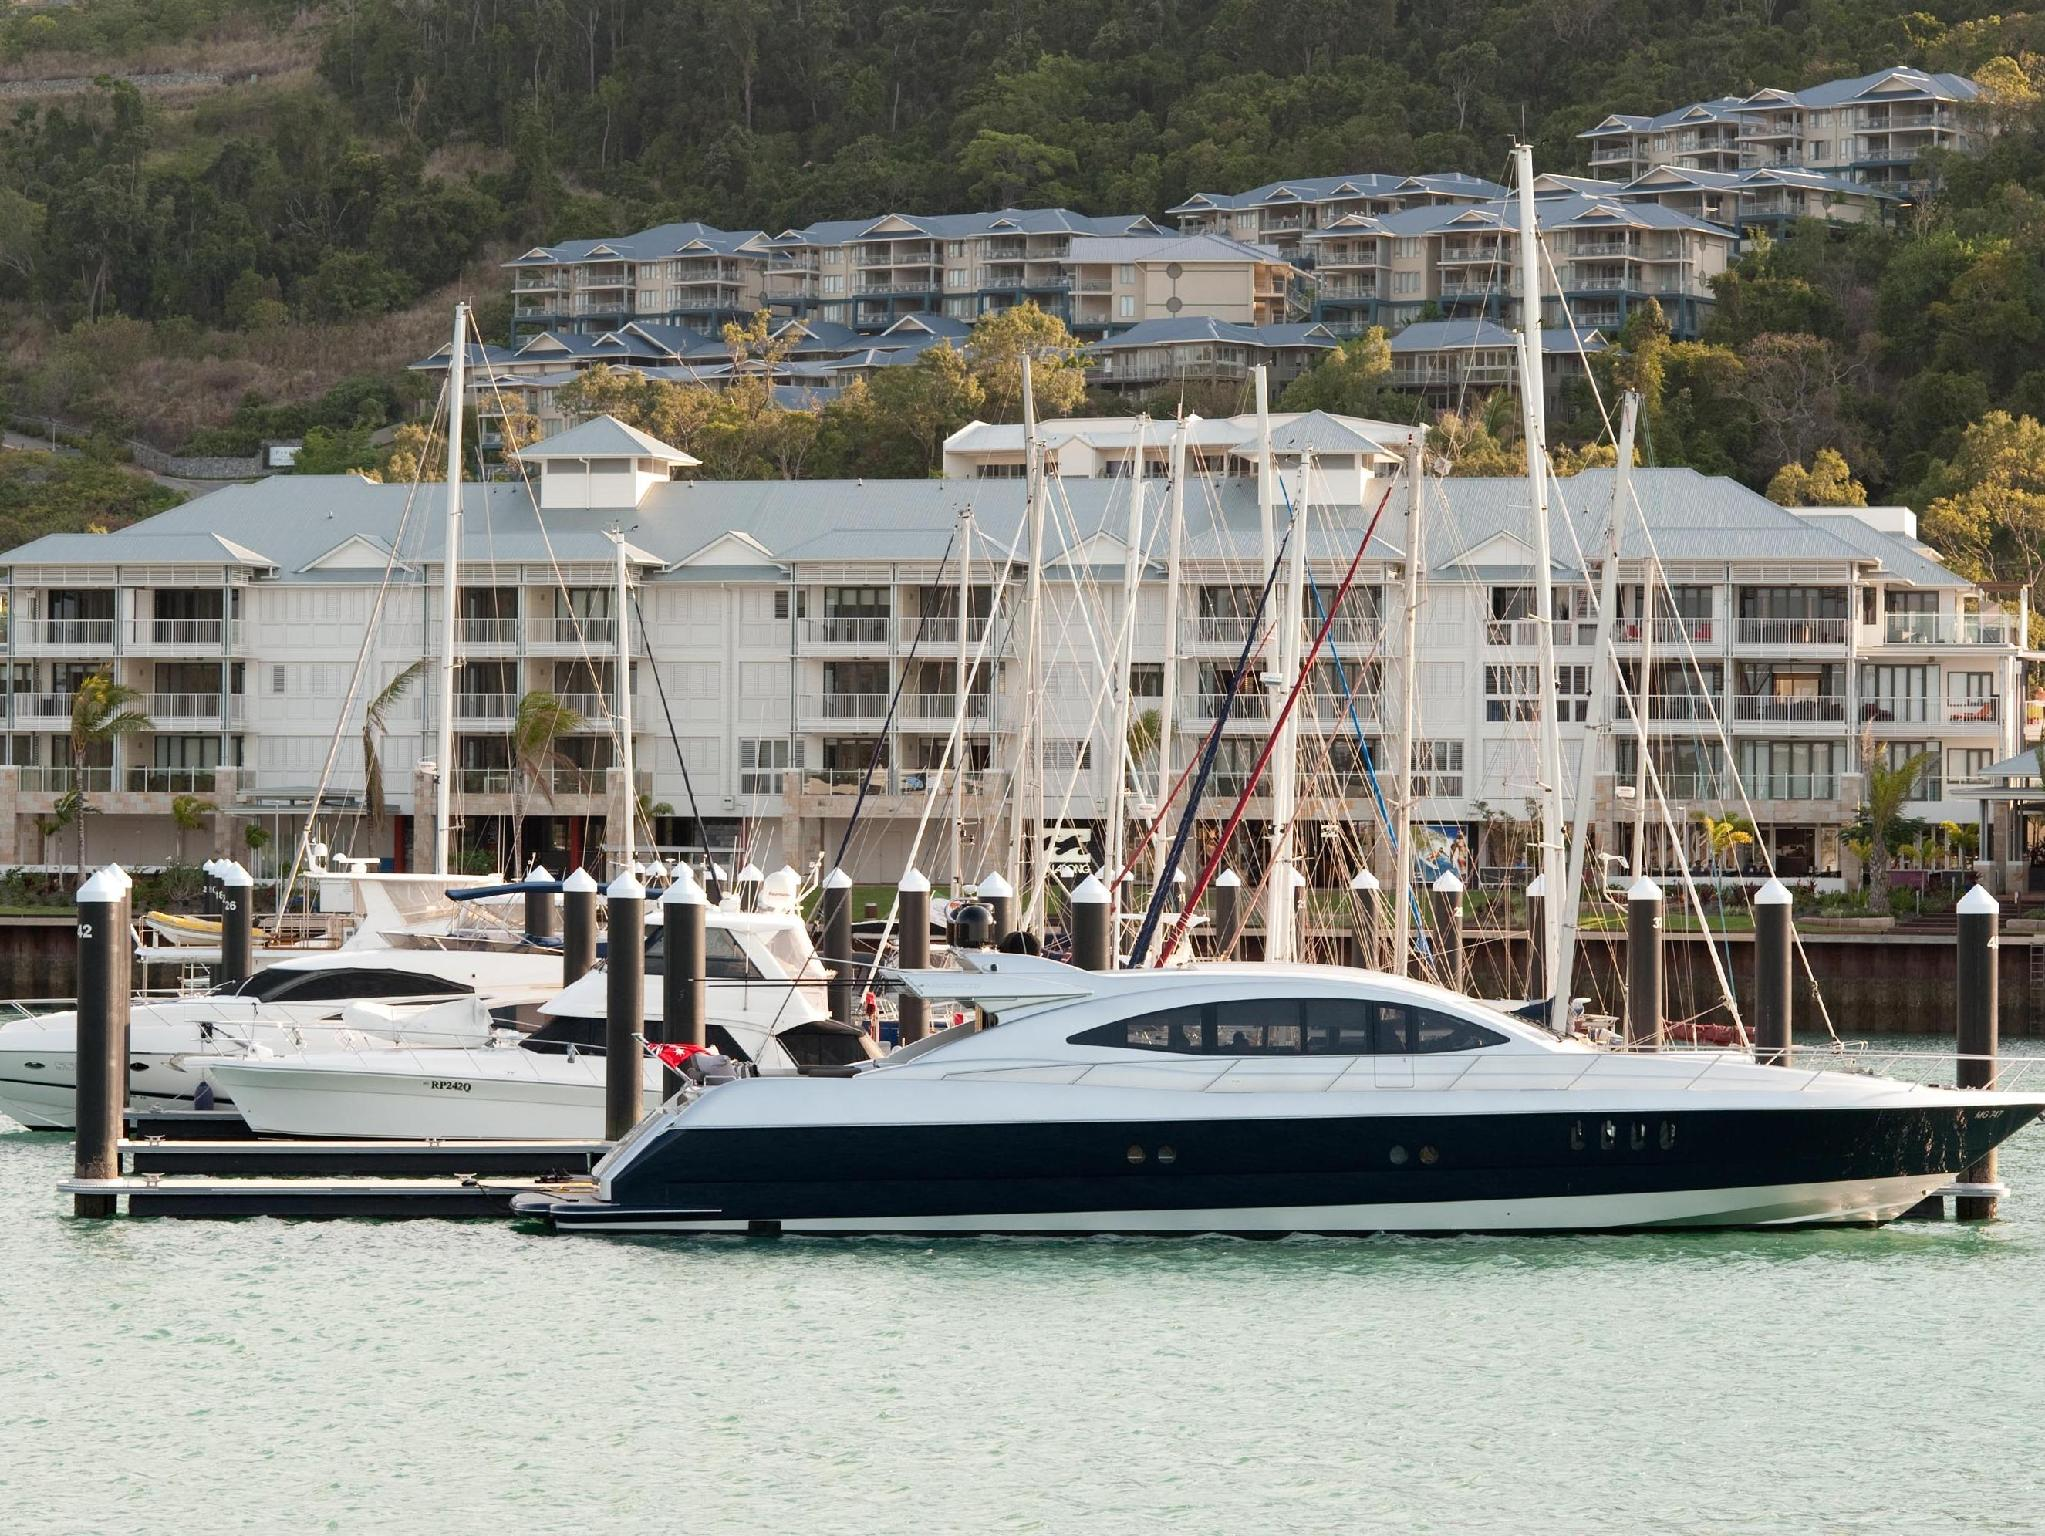 Boathouse Apartments by Outrigger Đảo Whitsundays